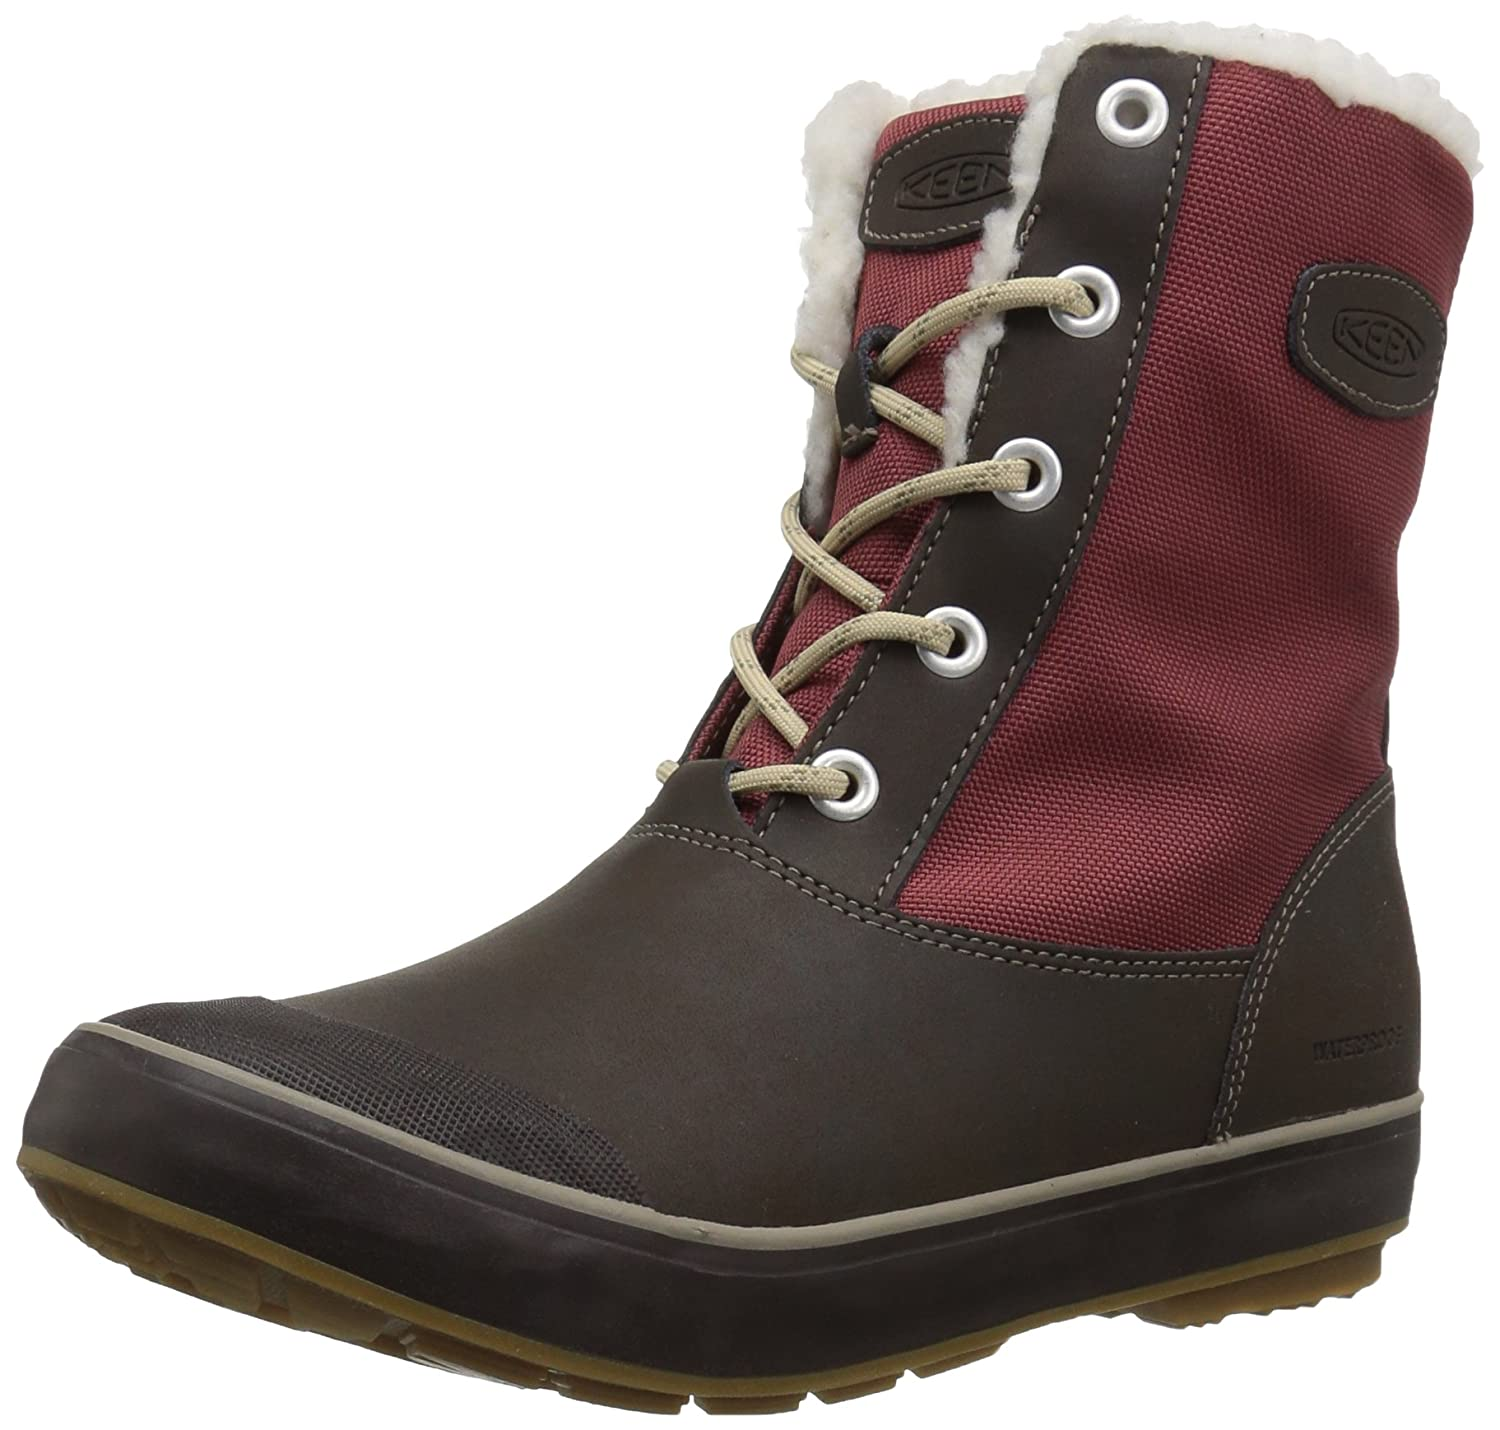 KEEN Women's Elsa Waterproof Winter Boot B01N76GVY5 11 B(M) US|Syrah/Coffee Bean